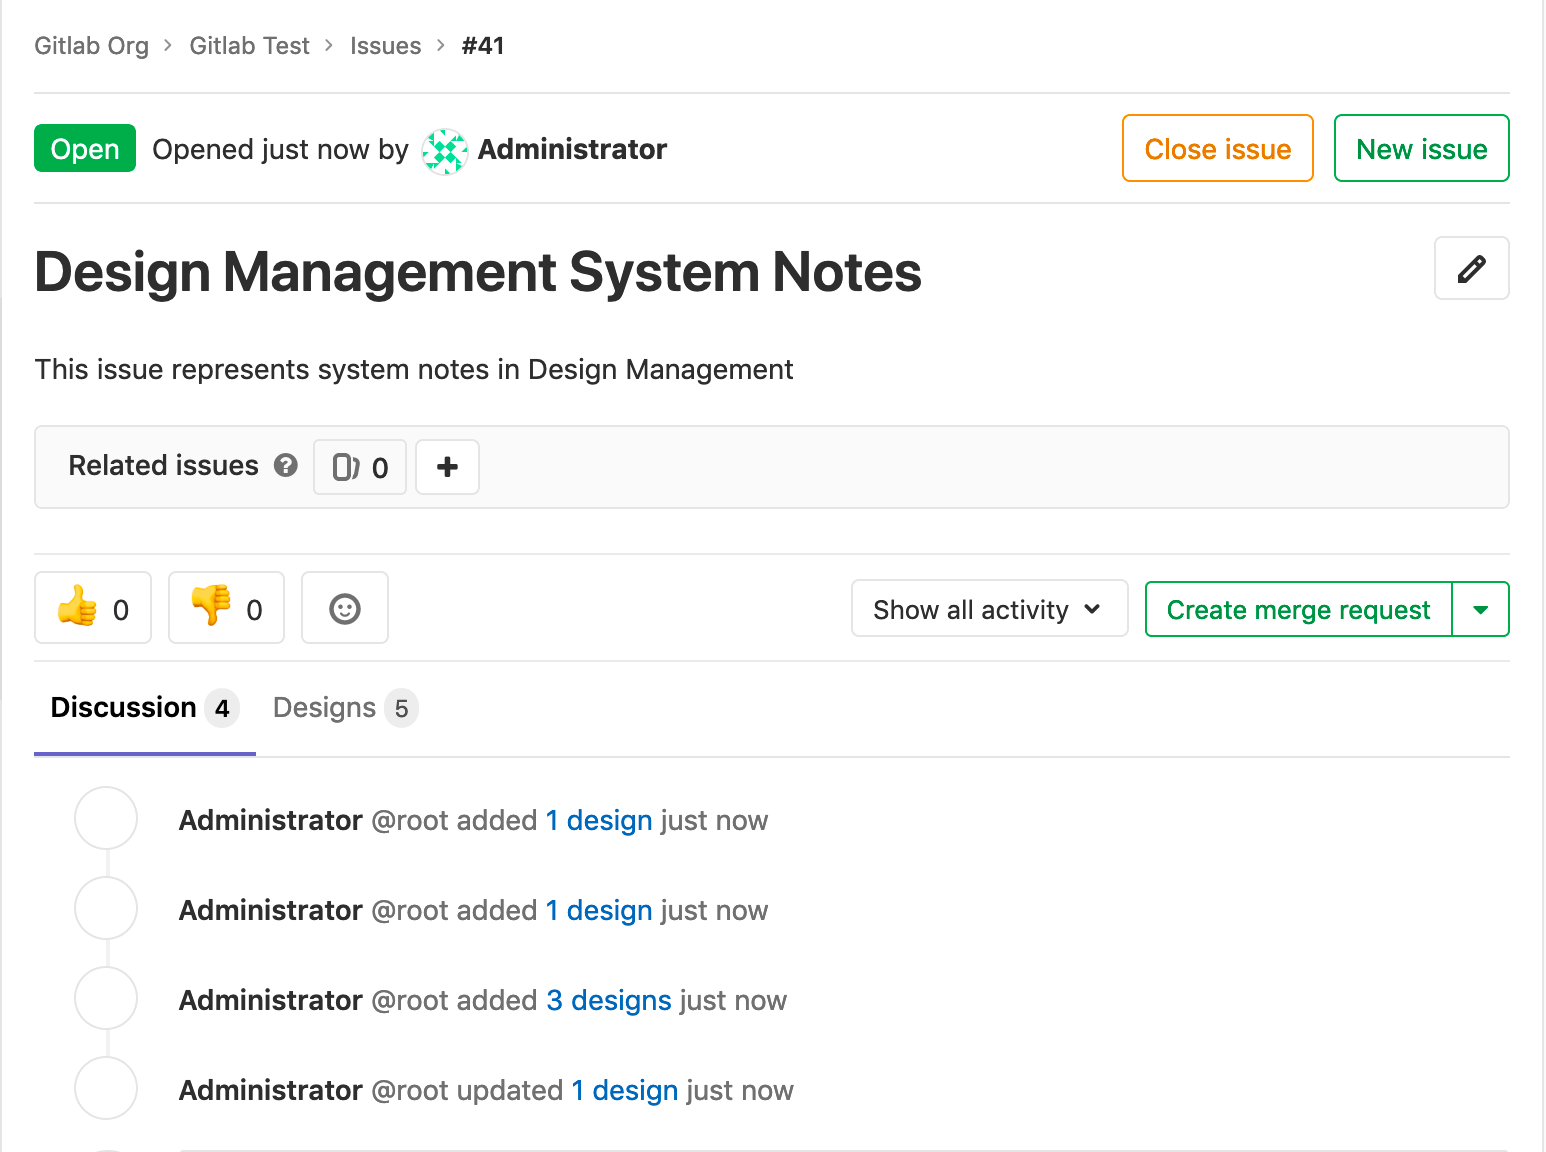 Design Management System Notes